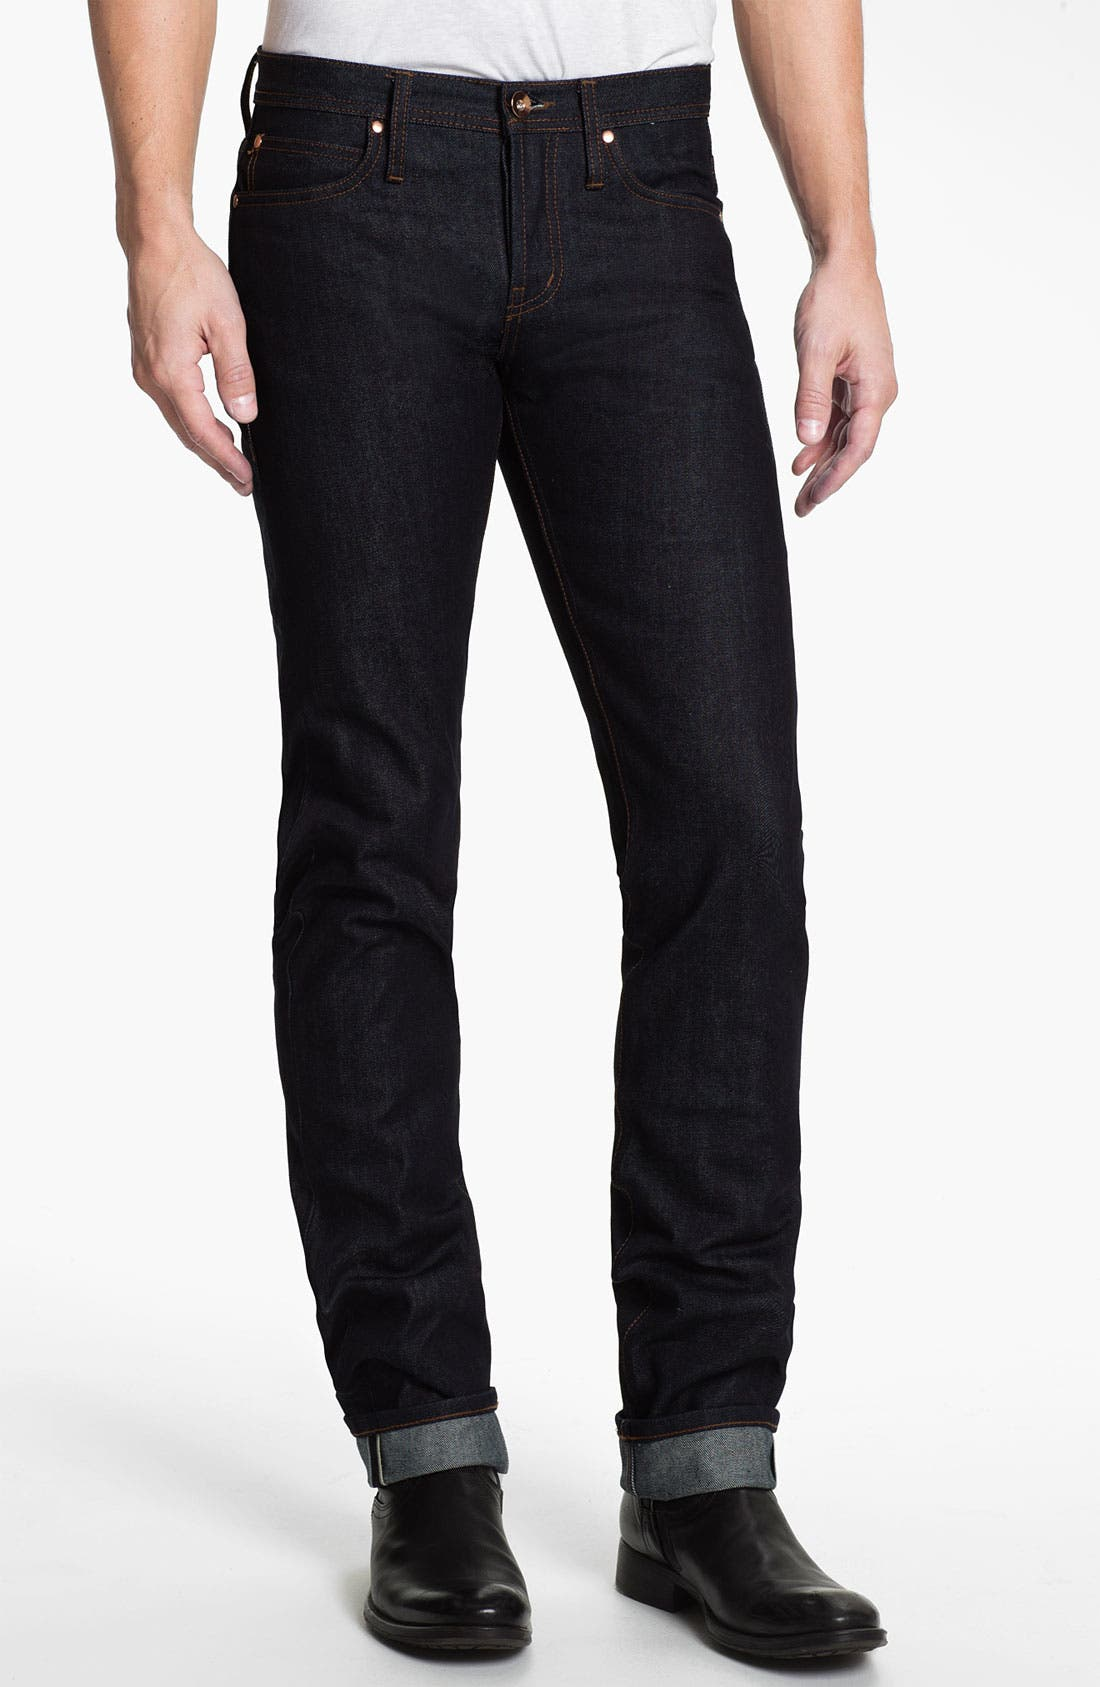 The Unbranded Brand UB101 Skinny Fit Raw Selvedge Jeans (Indigo)